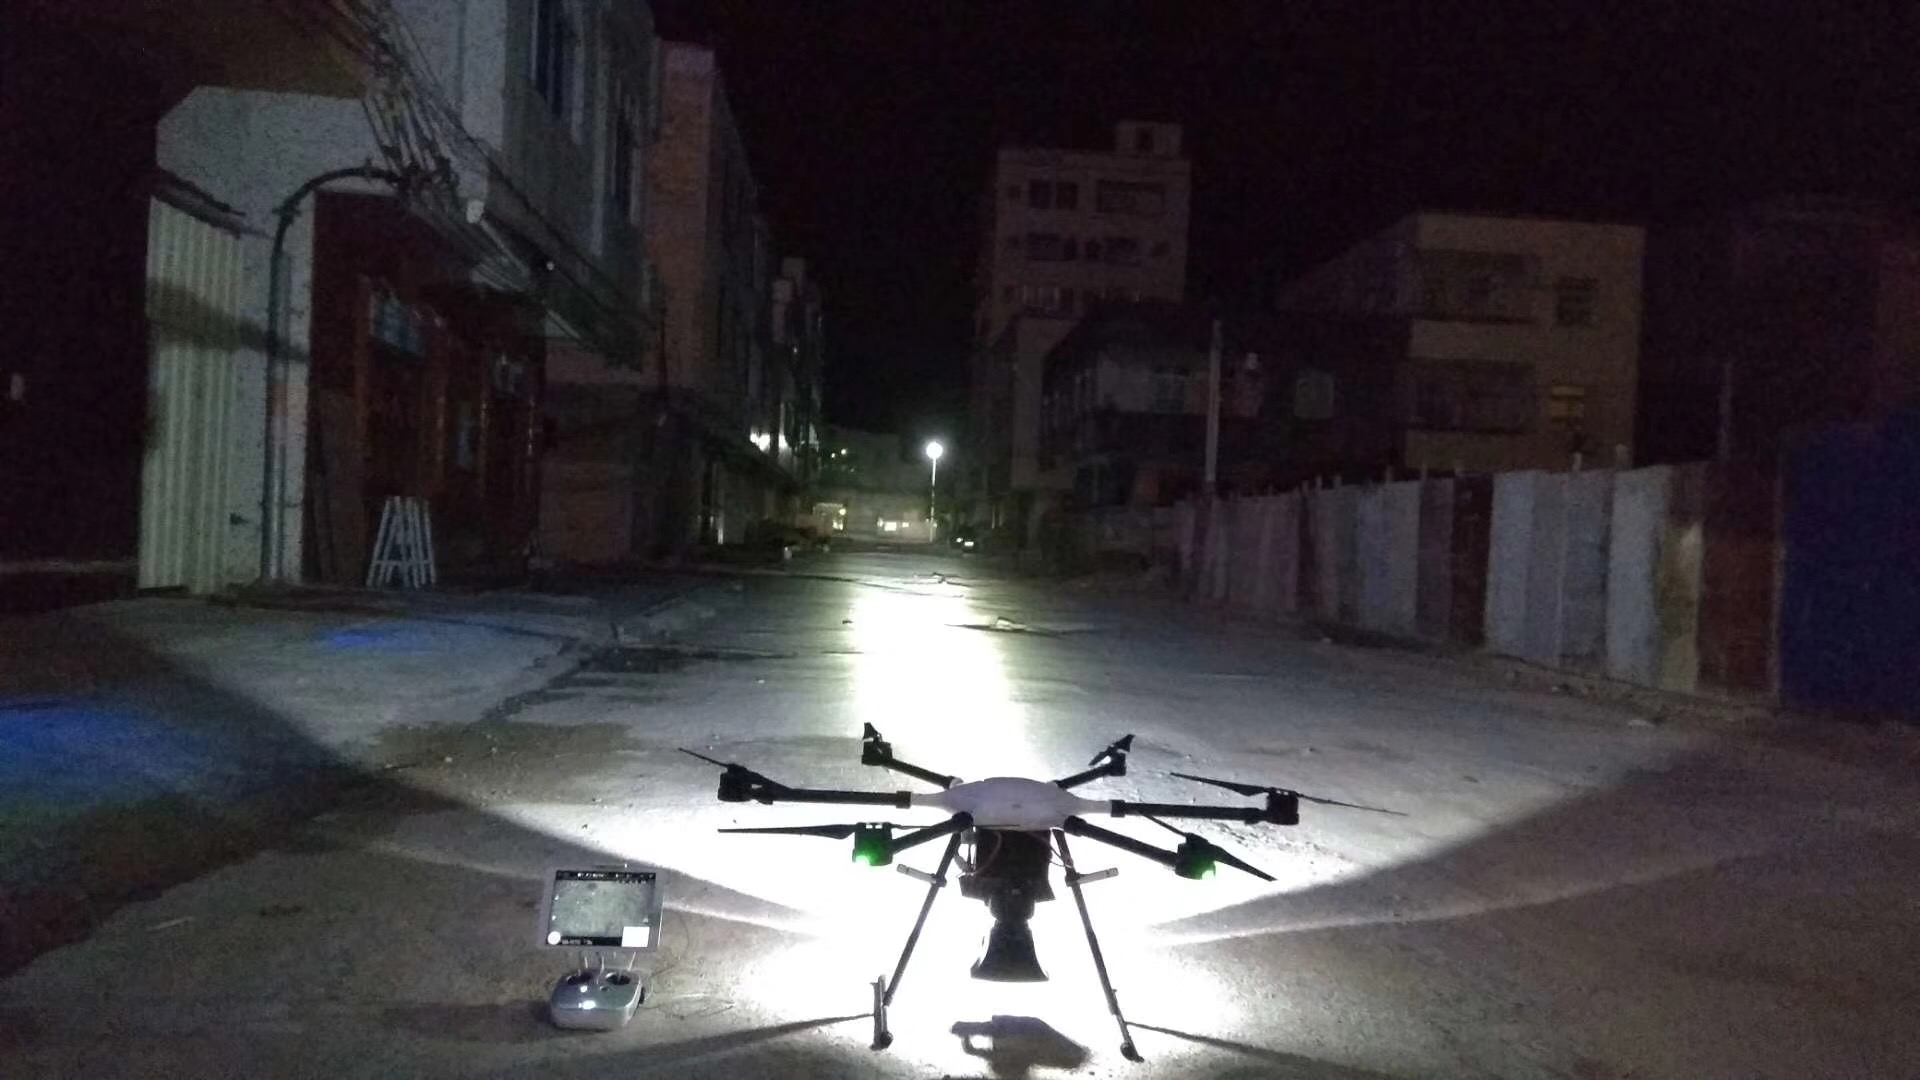 X1133 searching light Drone